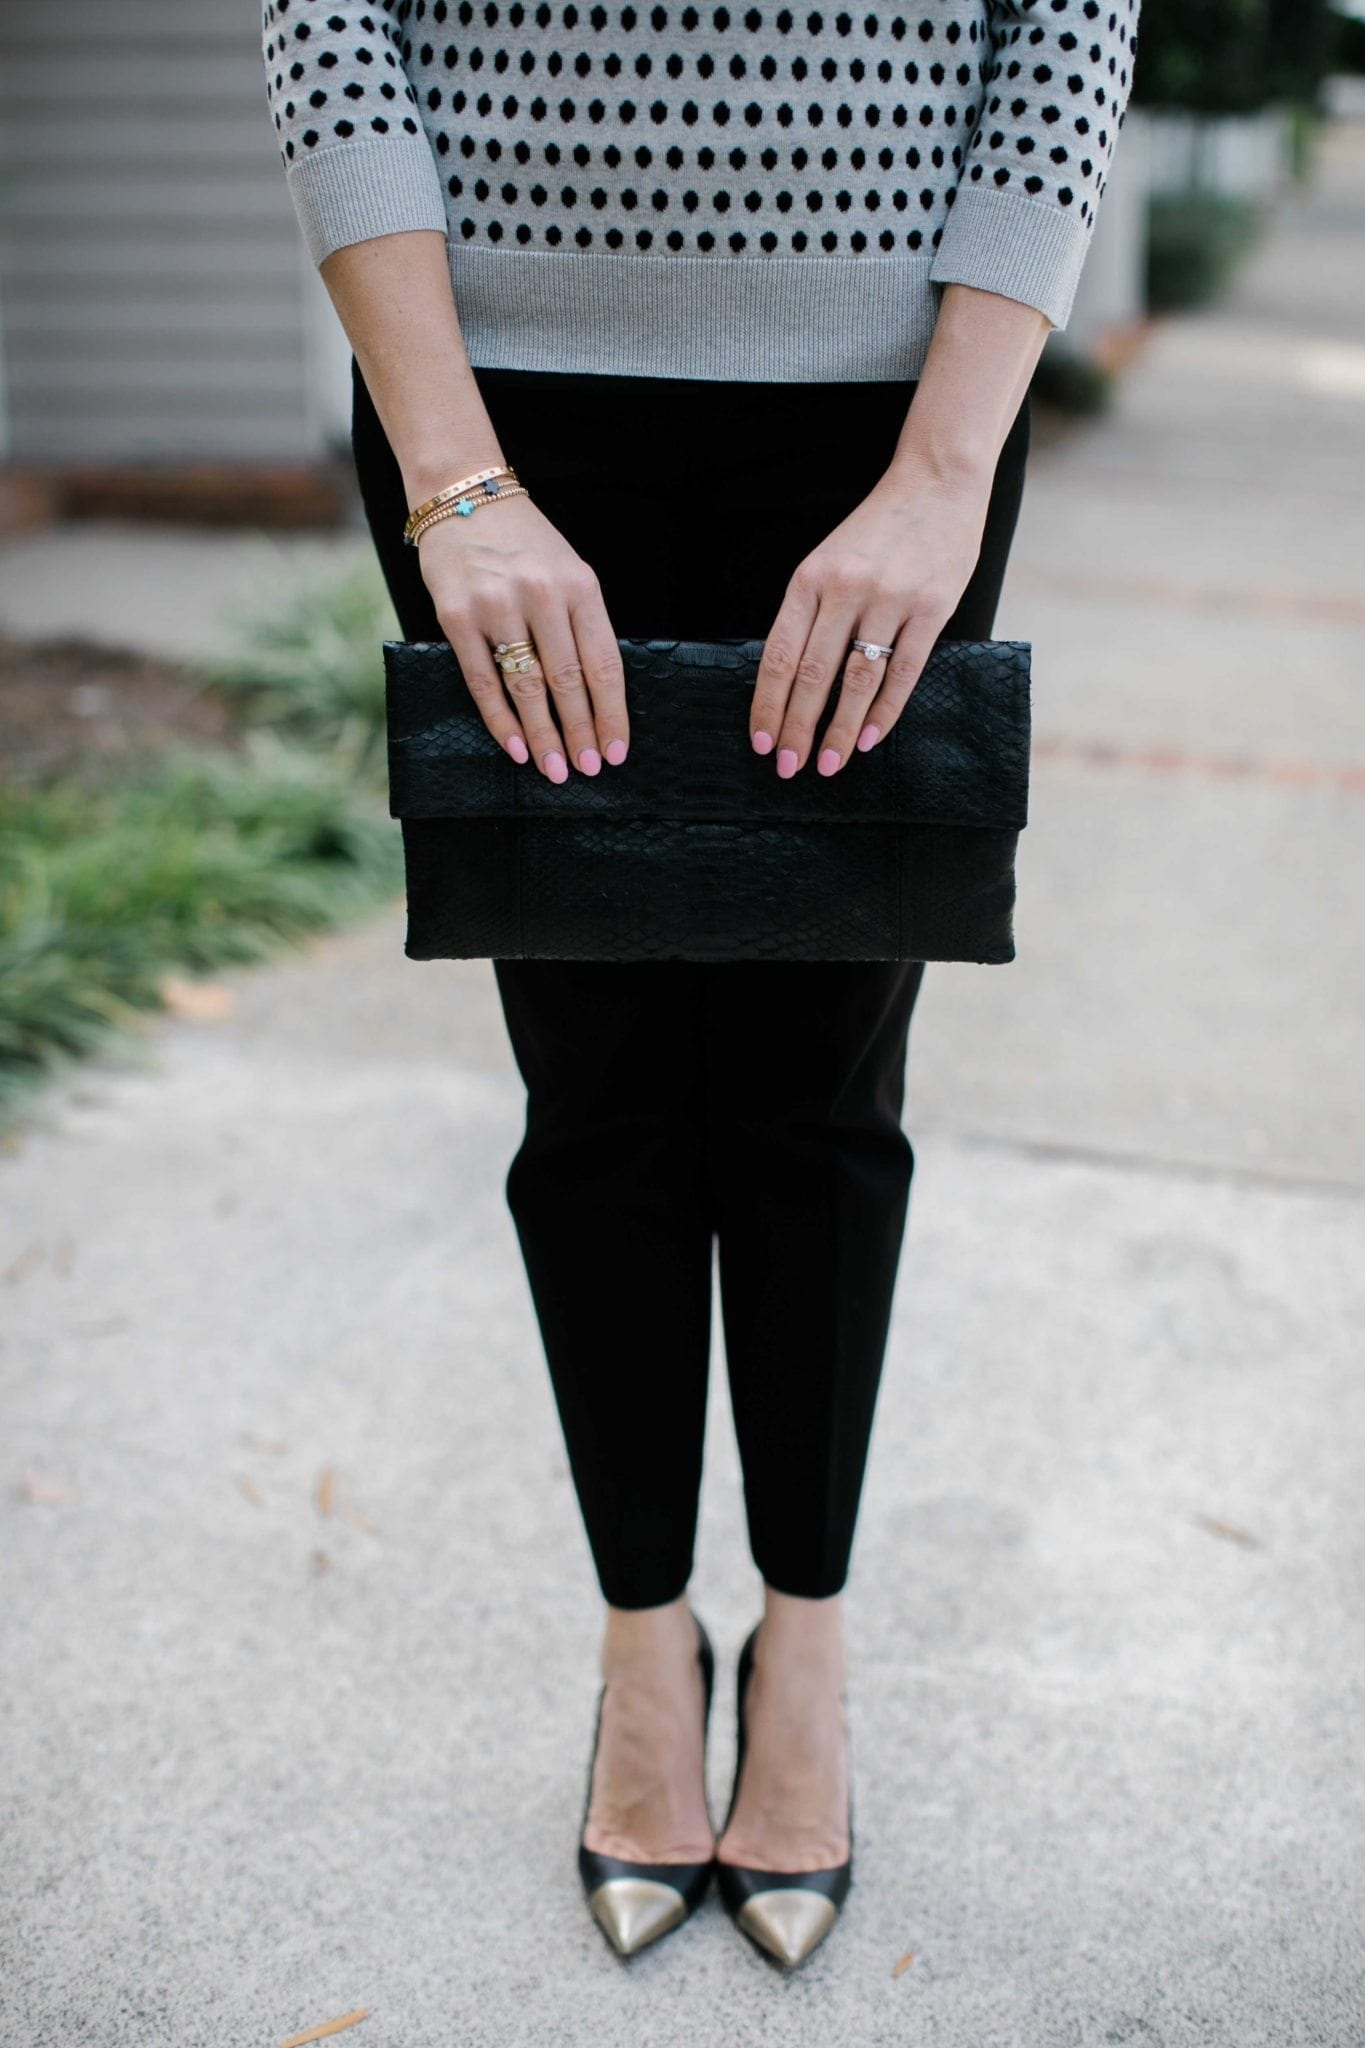 black envelope clutch with manolo blank black heals with gold toe